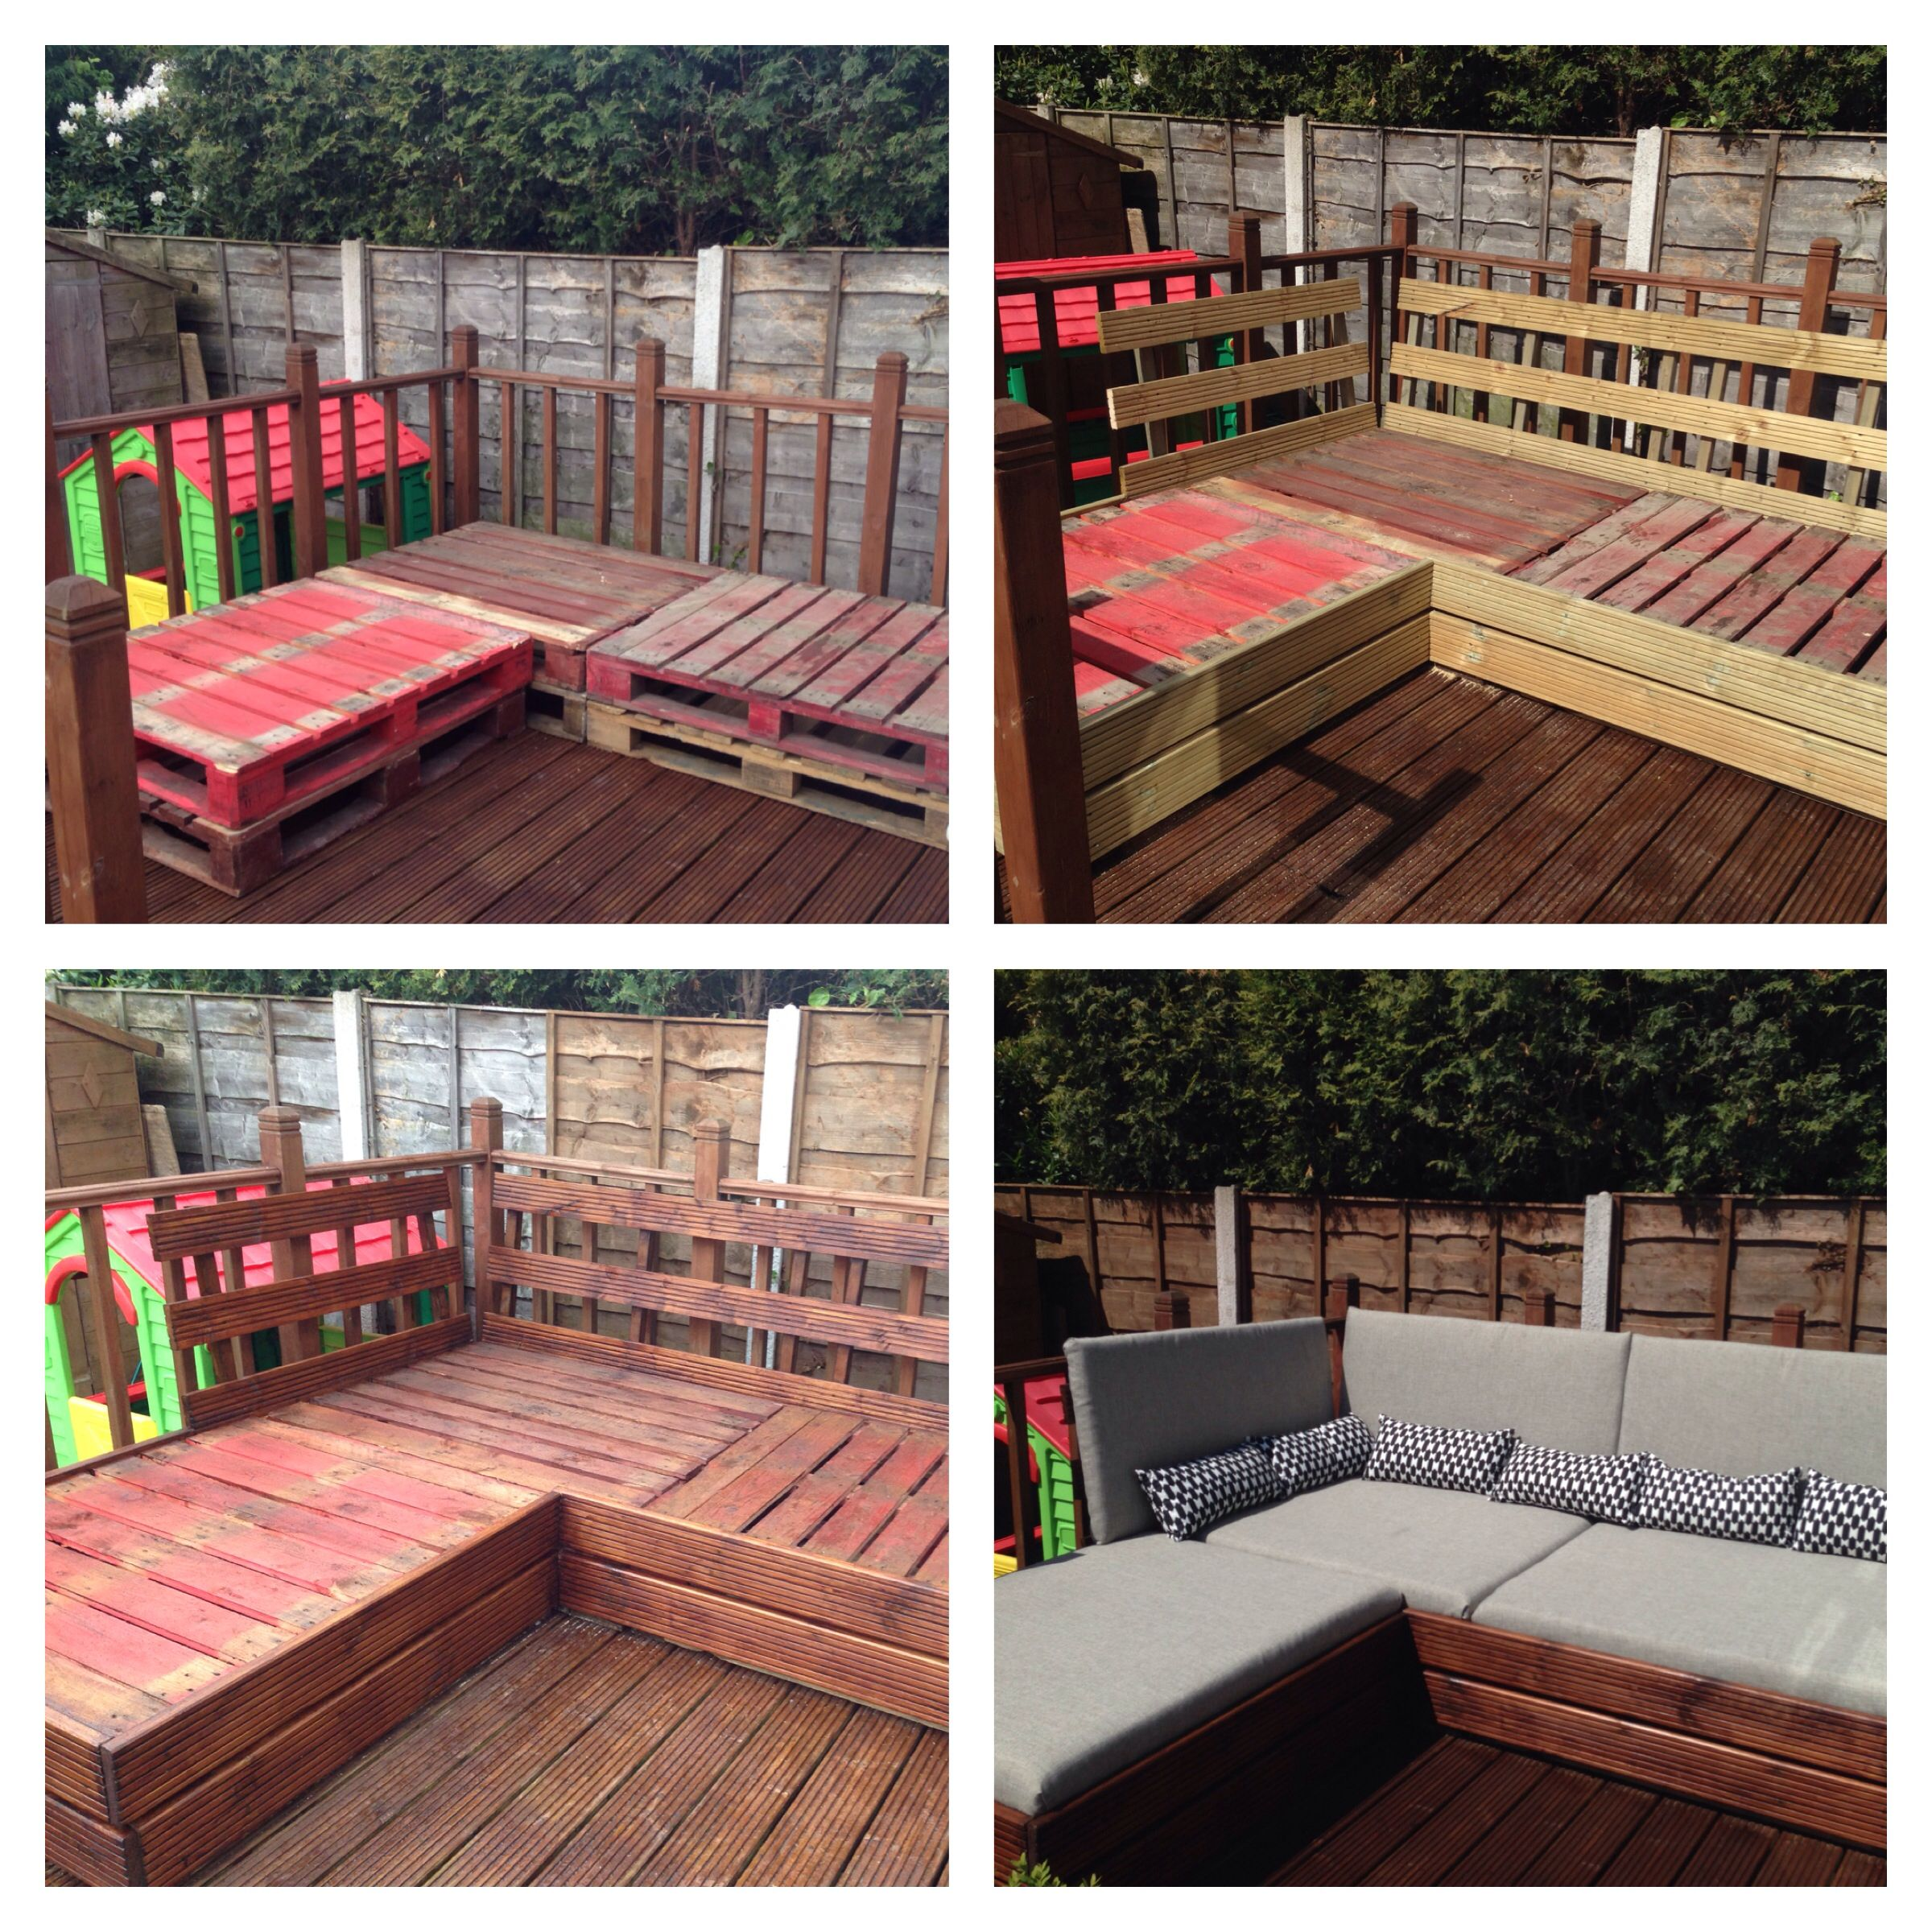 Outdoor Patio Furniture Made From Pallets patio furniture made from pallets and decking boards | patio